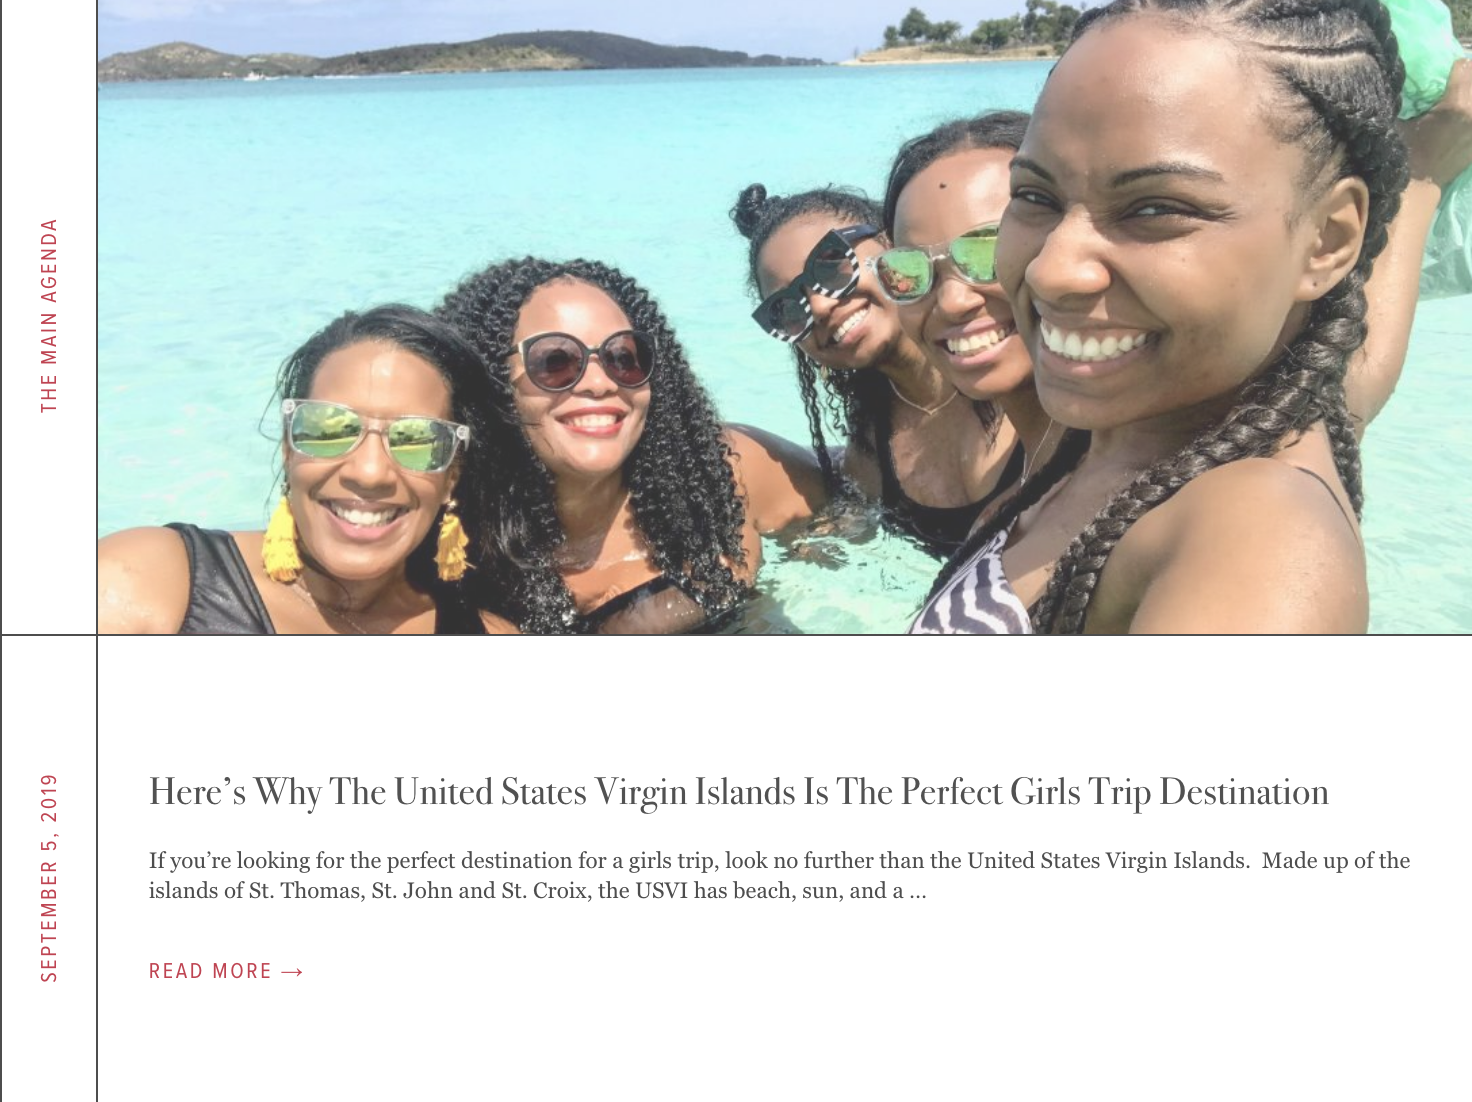 Here's Why The United States Virgin Islands Is The Perfect Girls Trip Destination